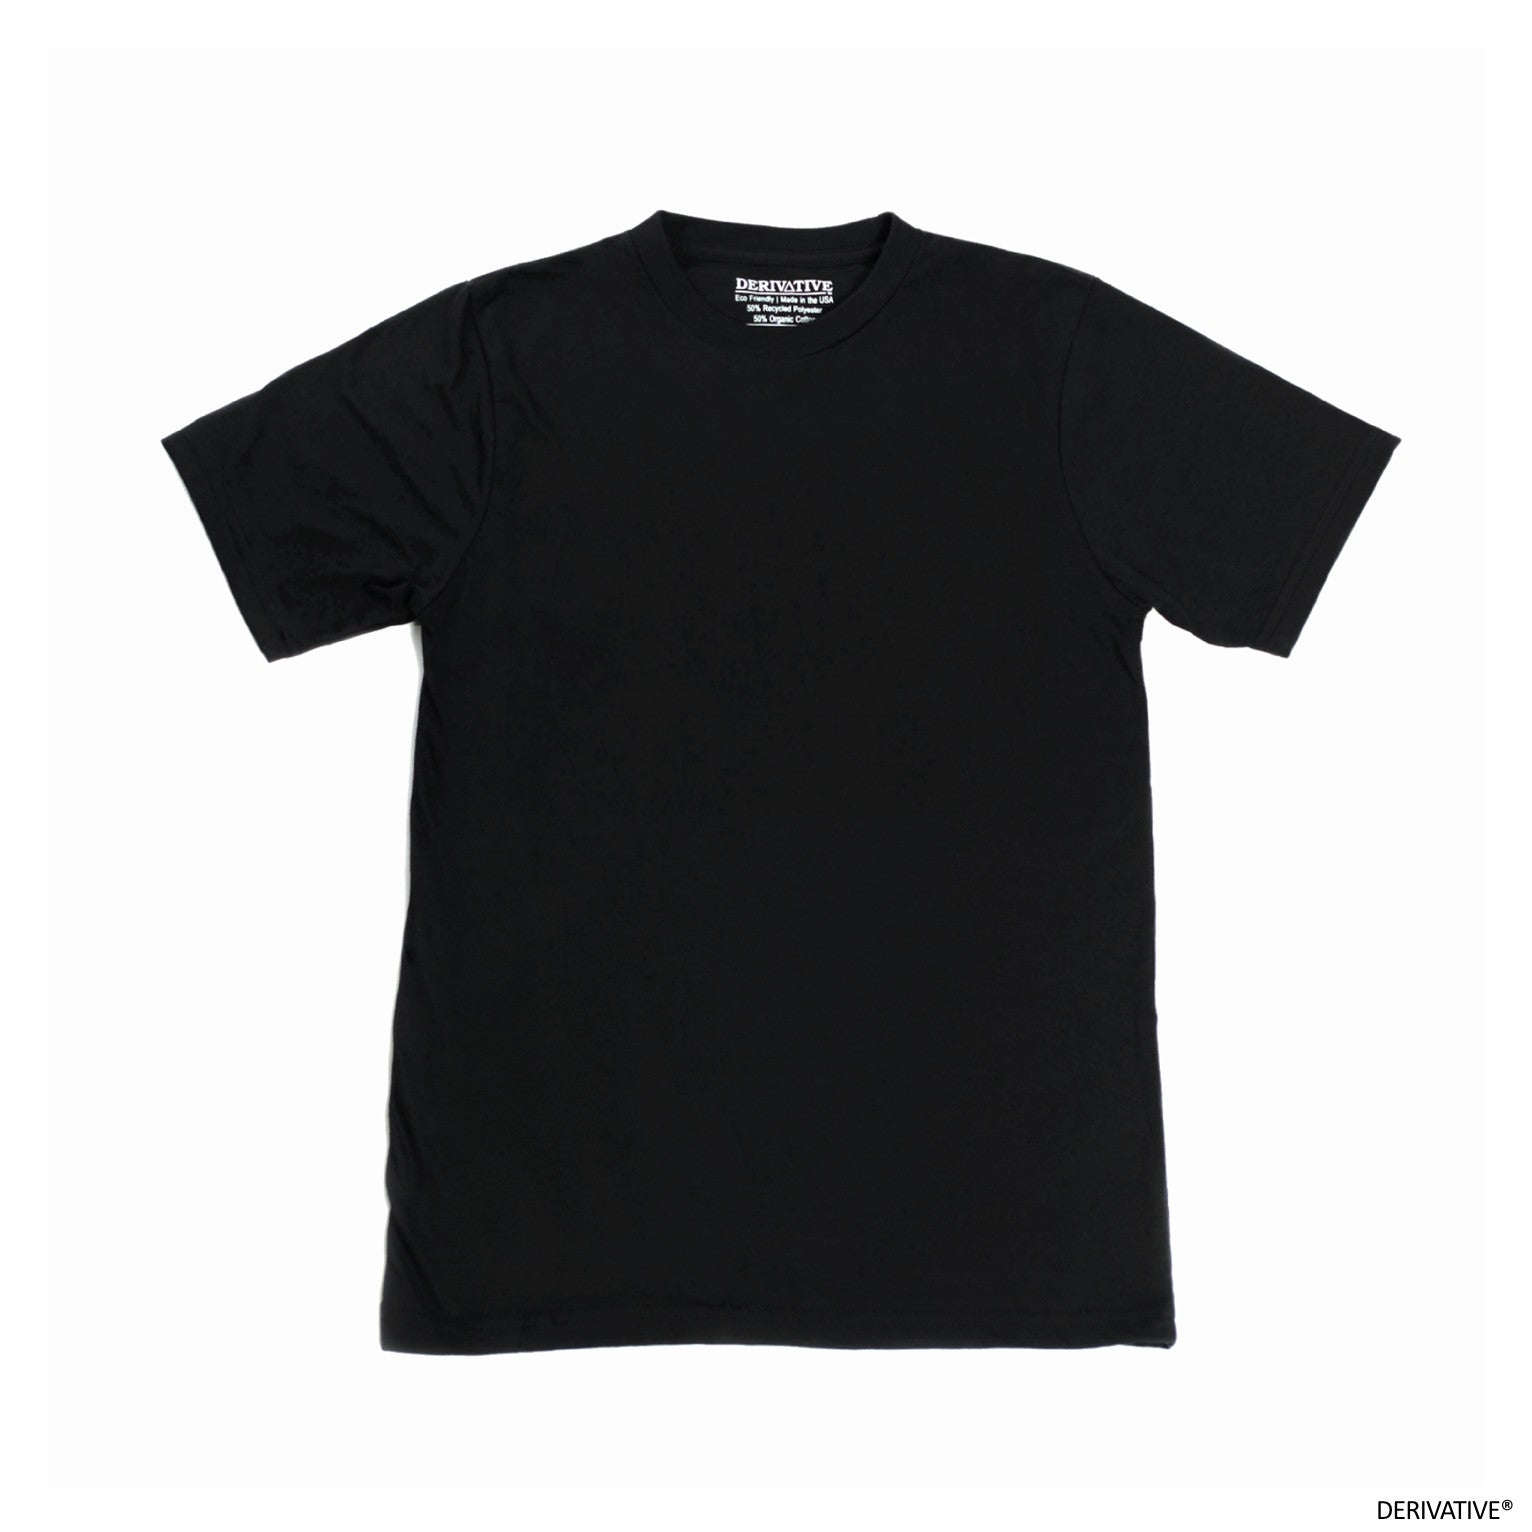 black t shirts made from recycled plastic bottles